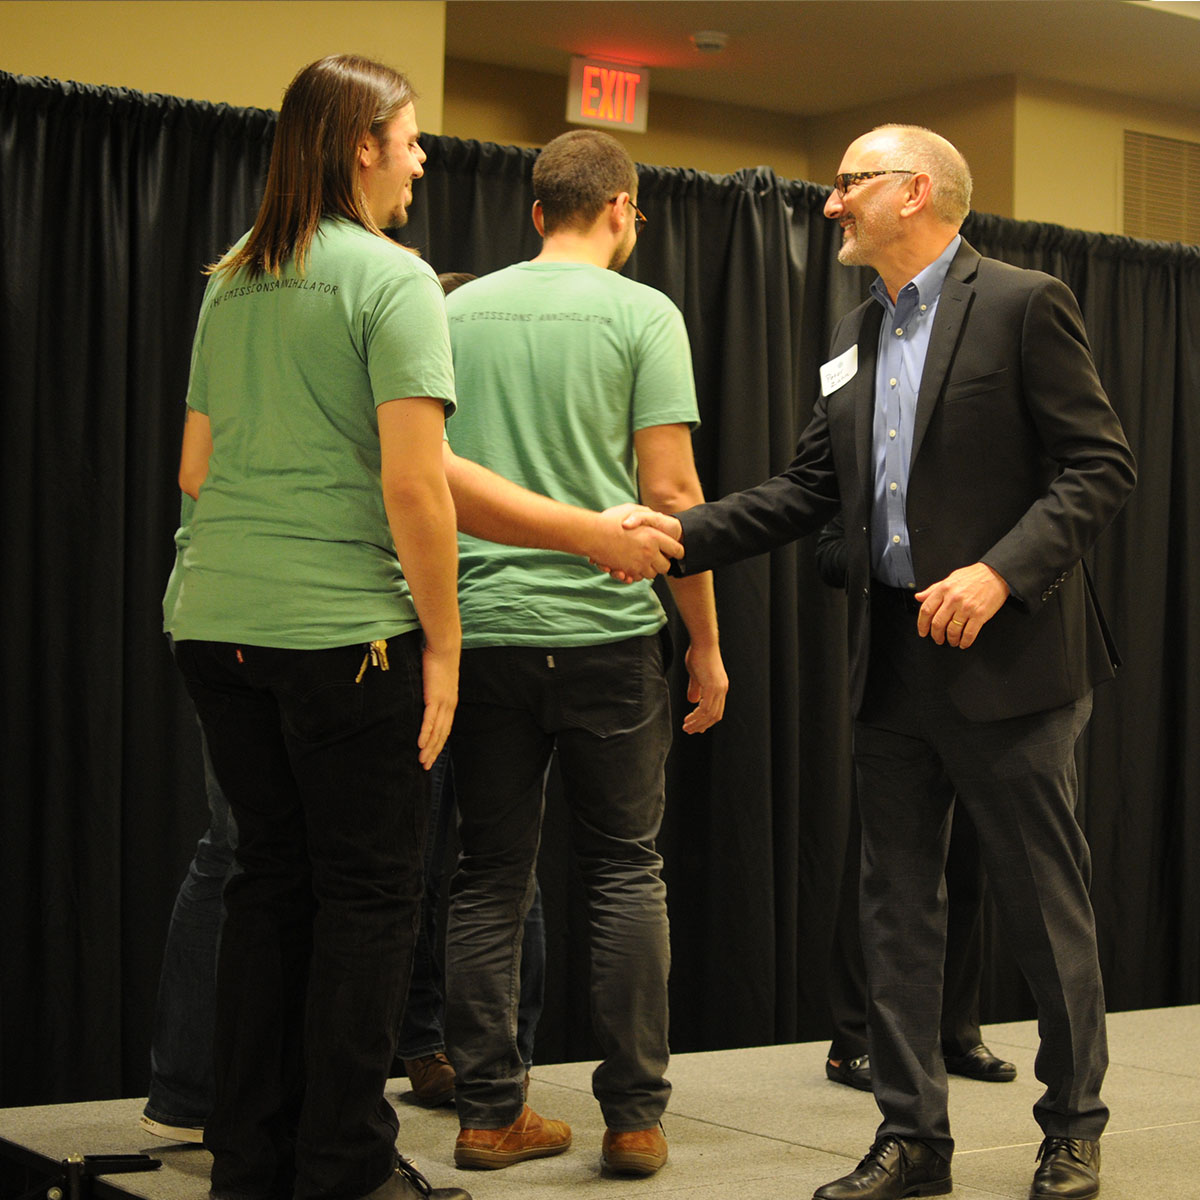 Recyclinator Team on stage shaking hands with Peter Zahn